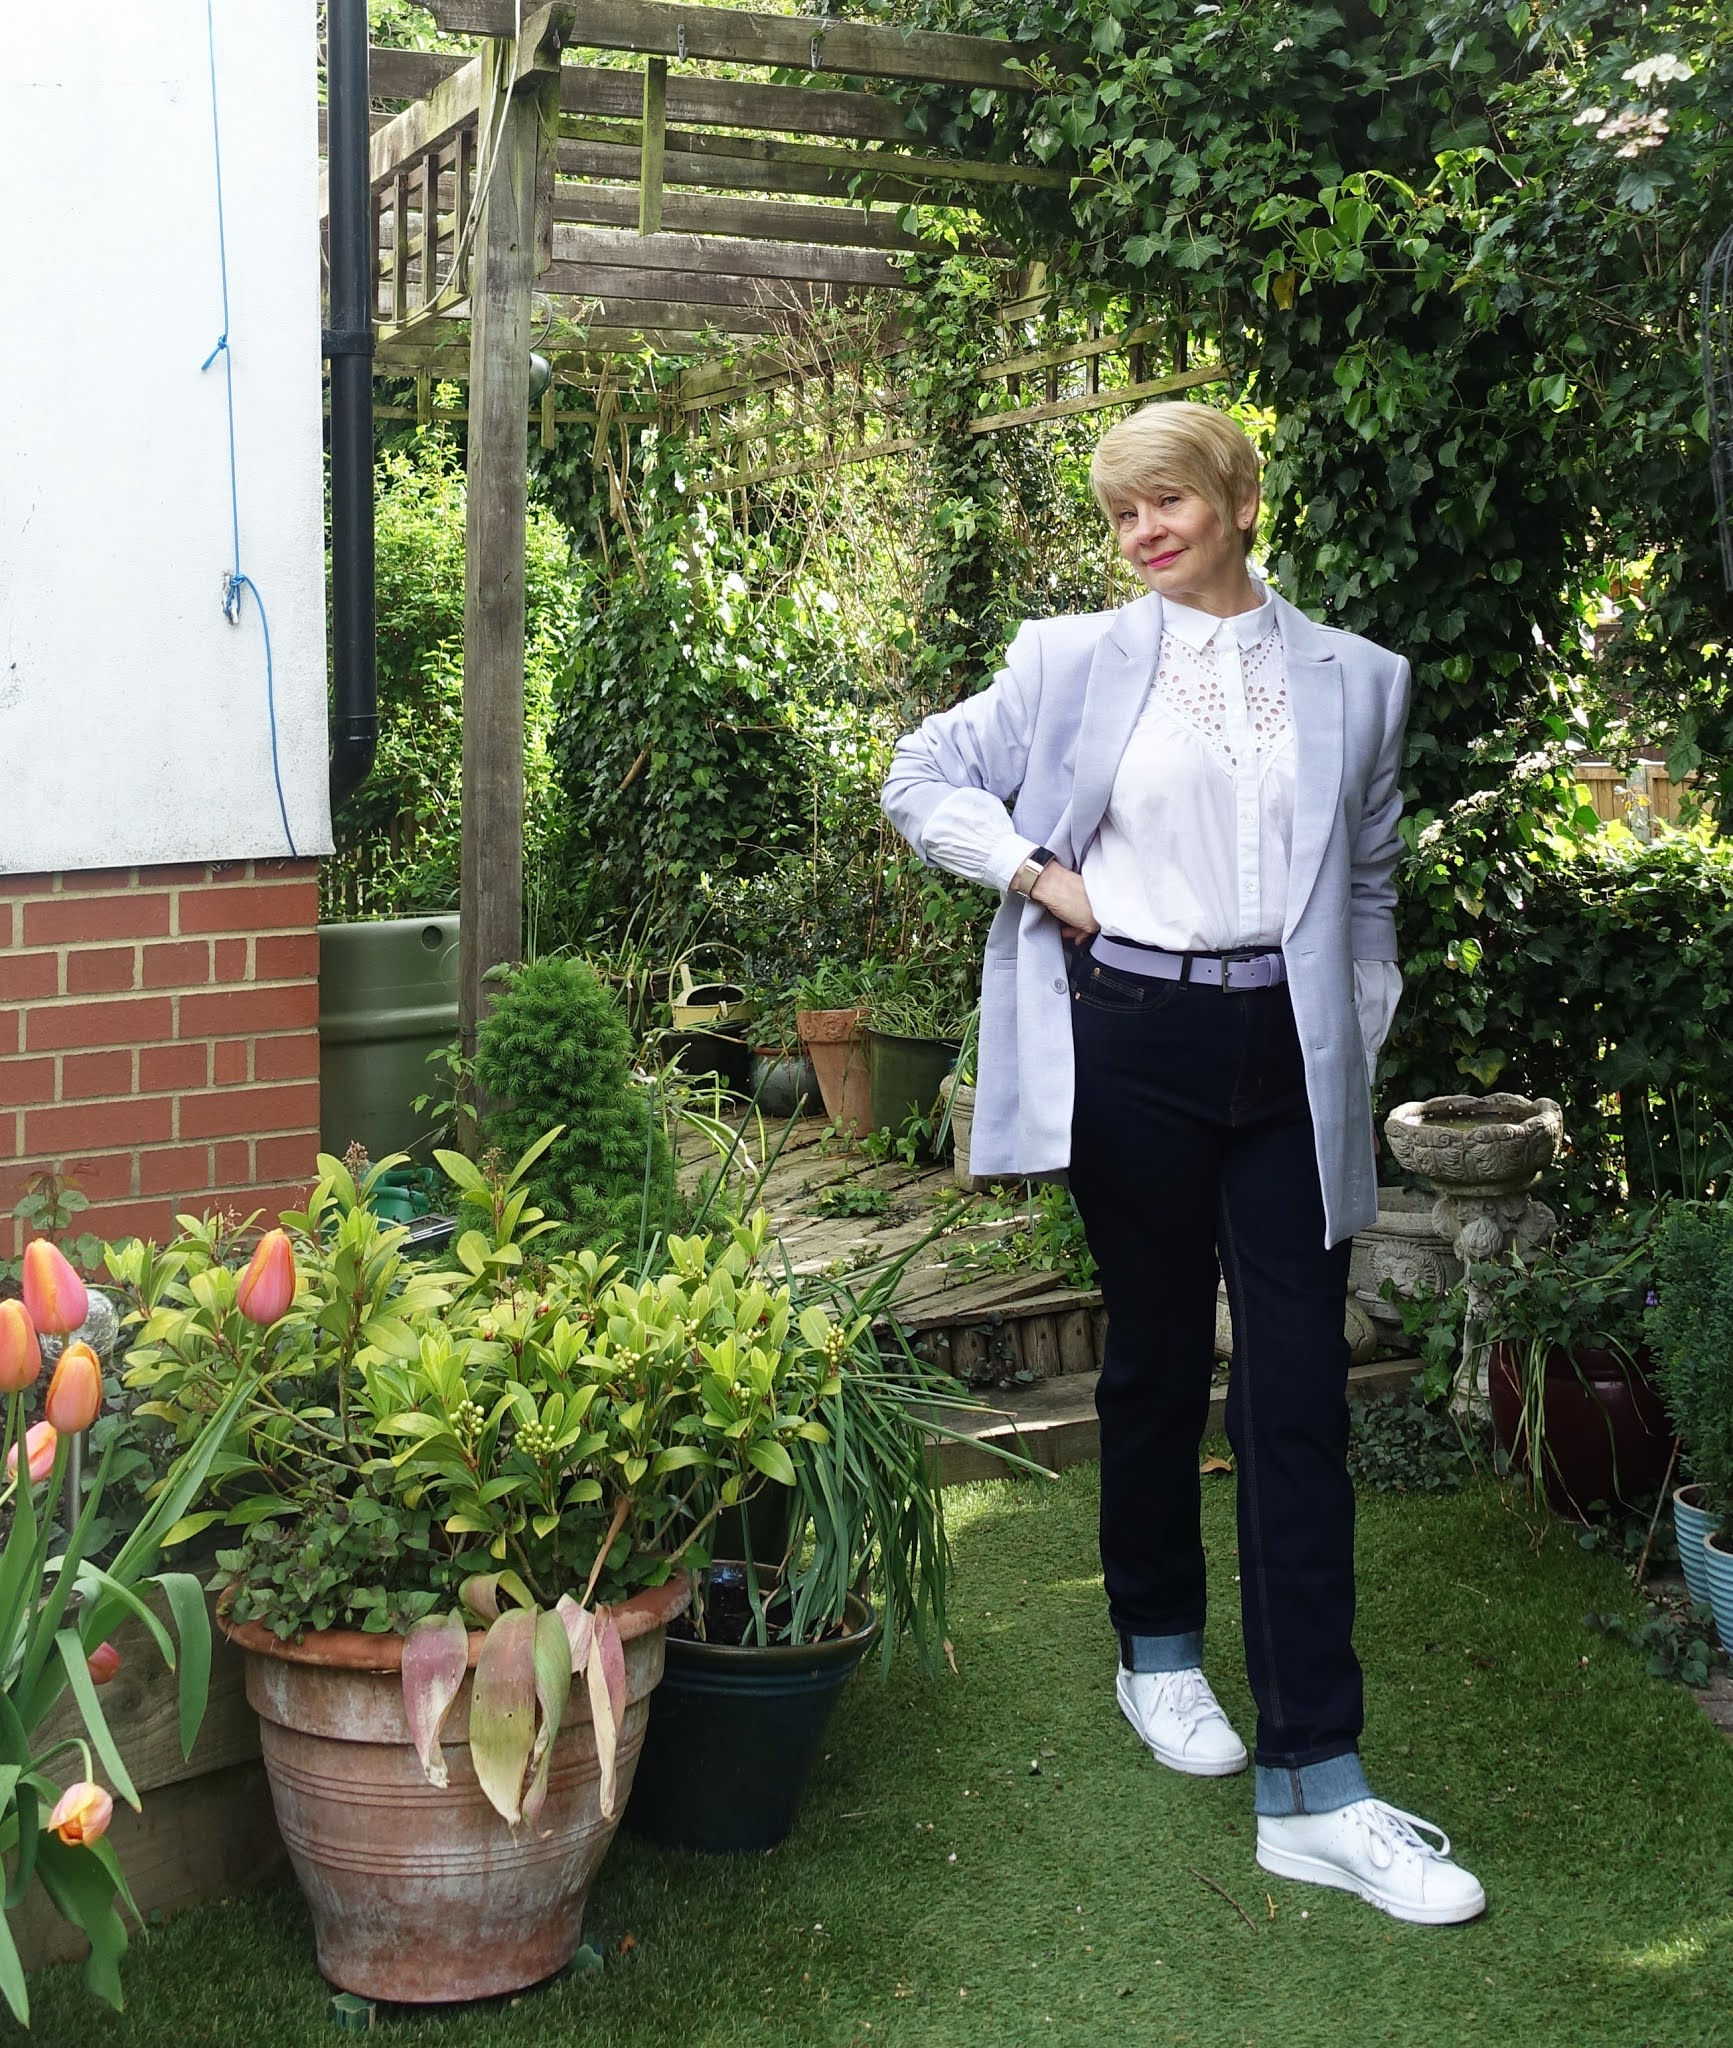 Orange tulips frame Is This Mutton blogger Gail Hanlon wearing casual outfit of lilac blazer, jeans and white blouse